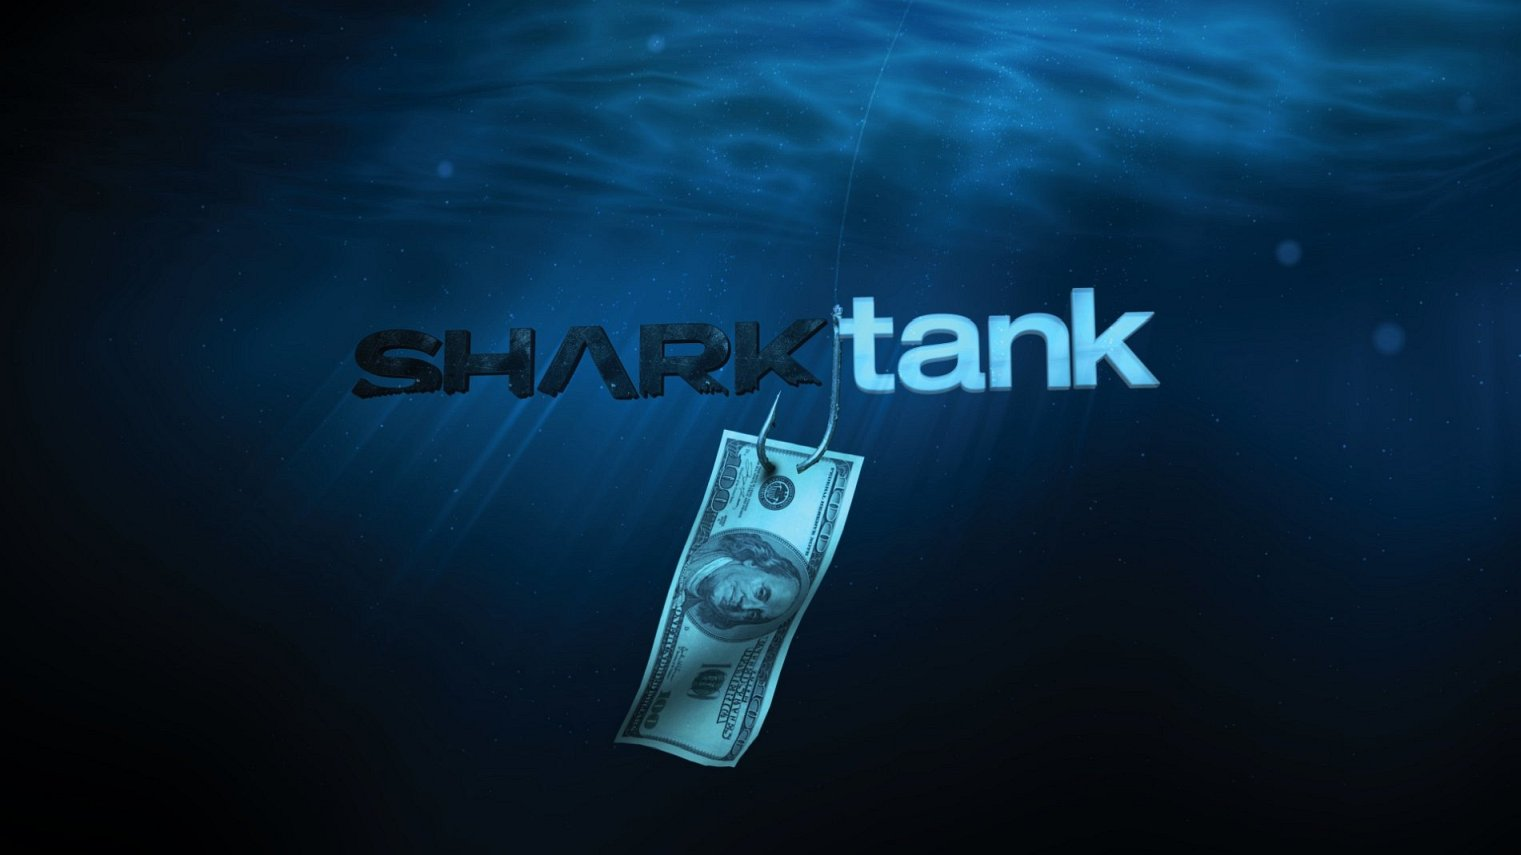 what time is Shark Tank on